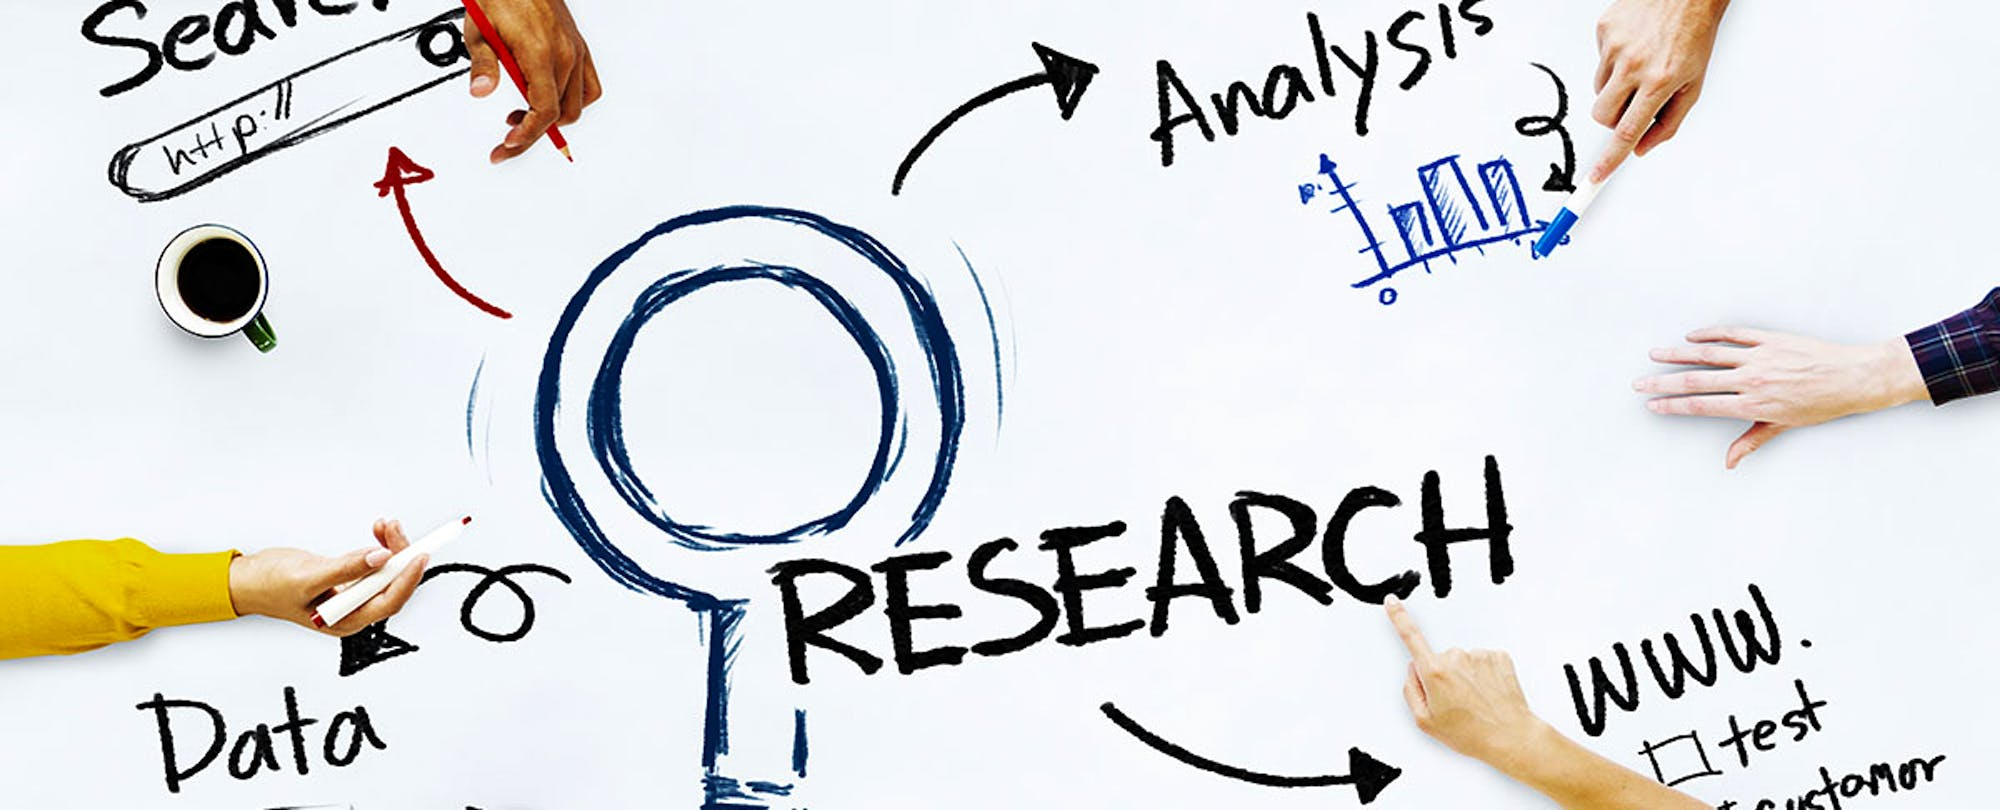 which edtech companies are producing the best research based which edtech companies are producing the best research based products